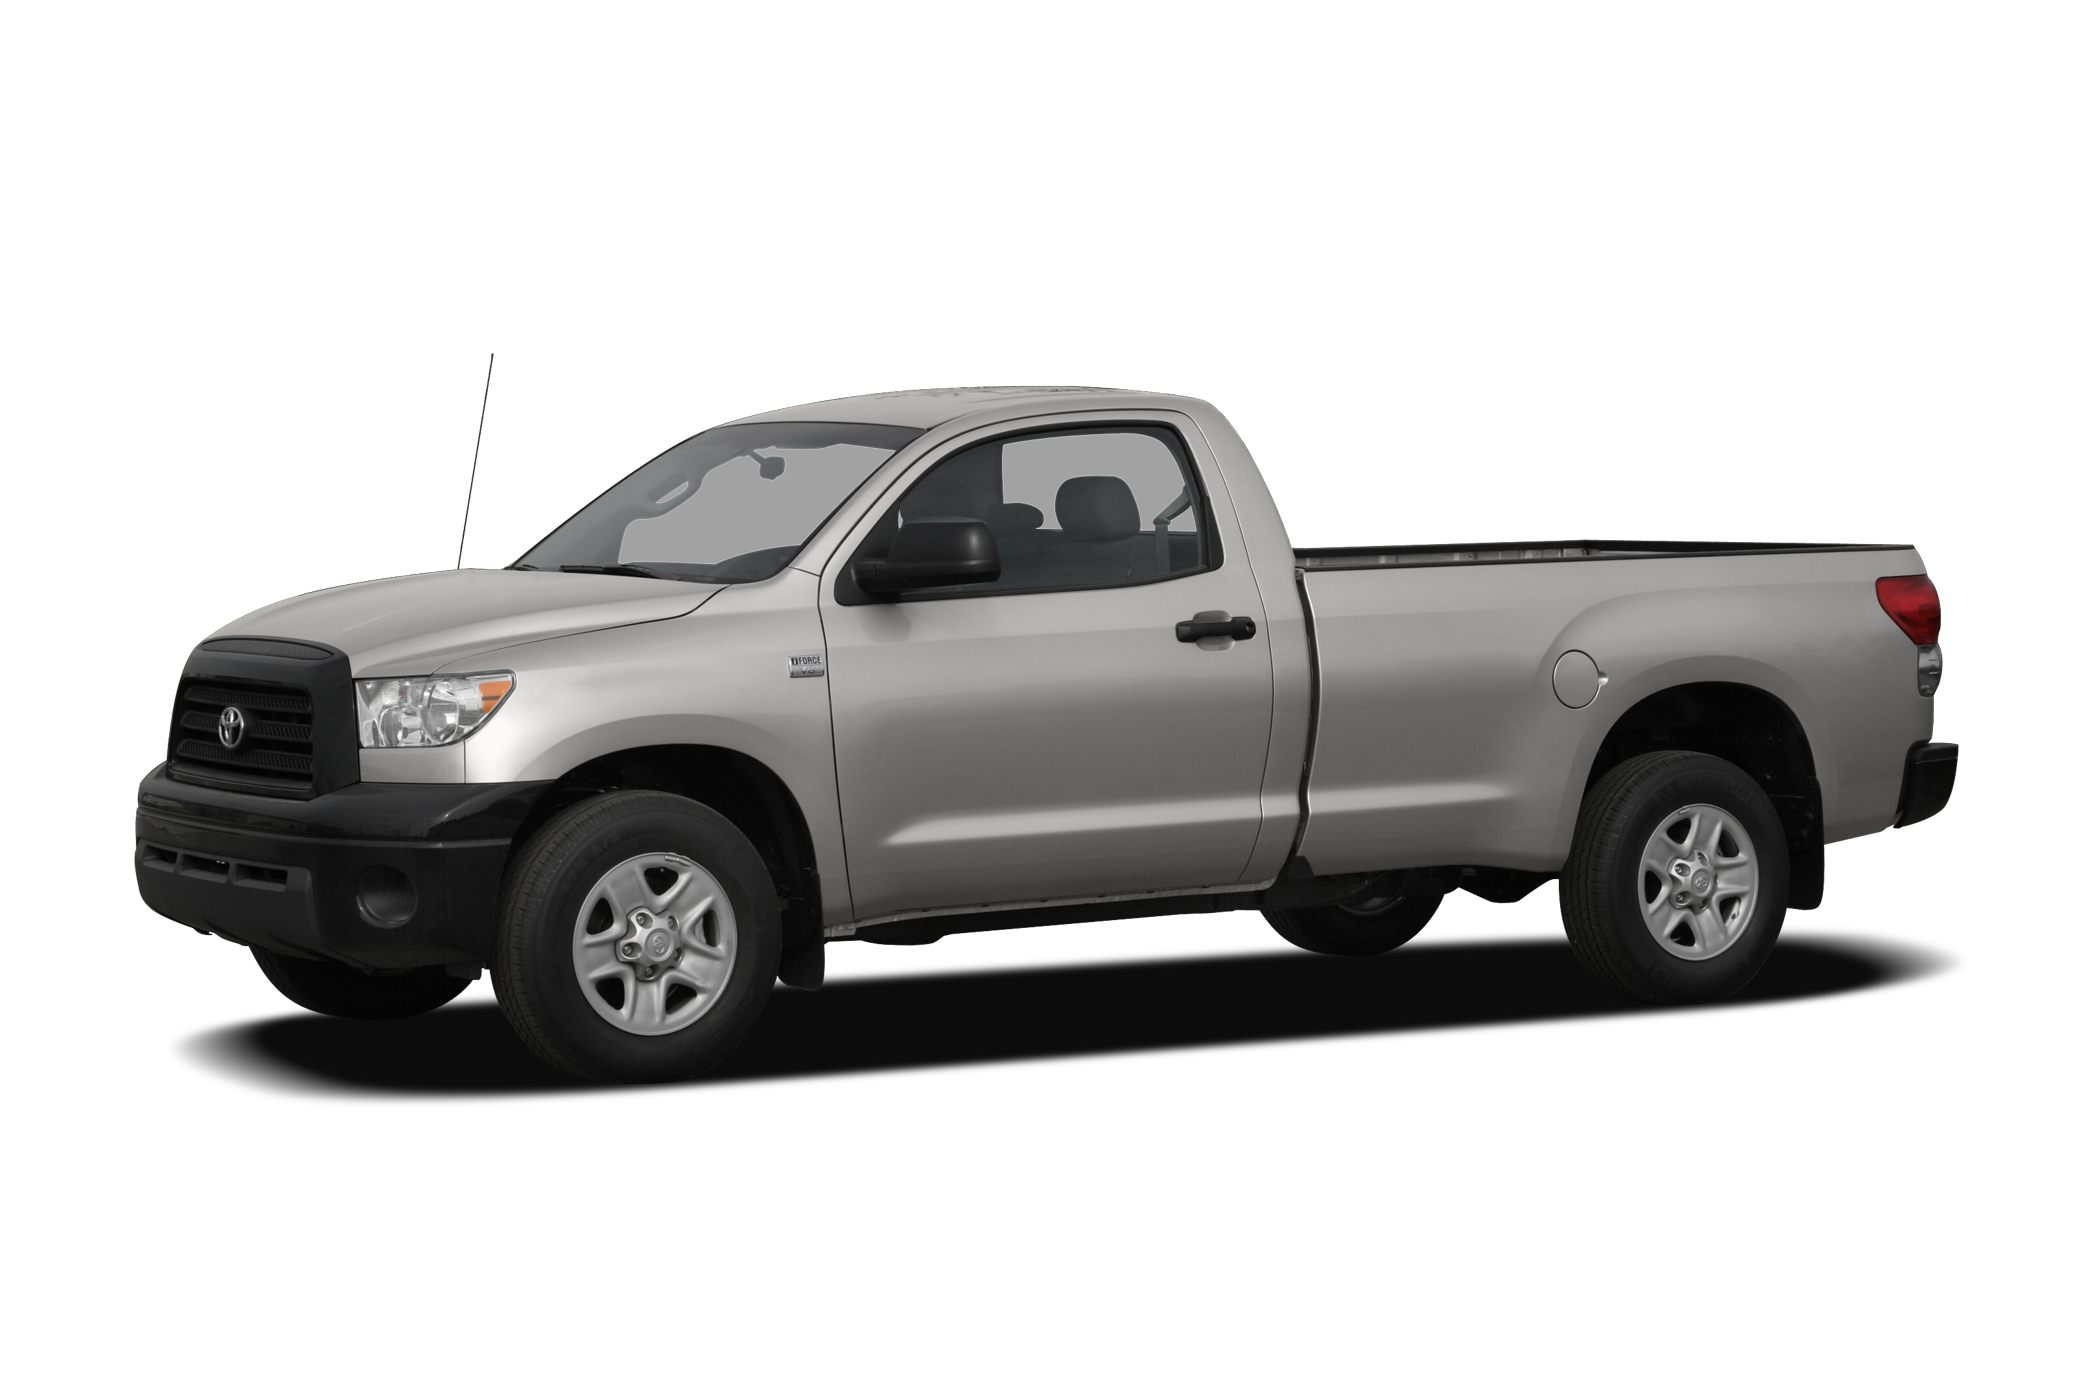 2007 Toyota Tundra Regular Cab Pickup for sale in Waxahachie for $7,995 with 233,495 miles